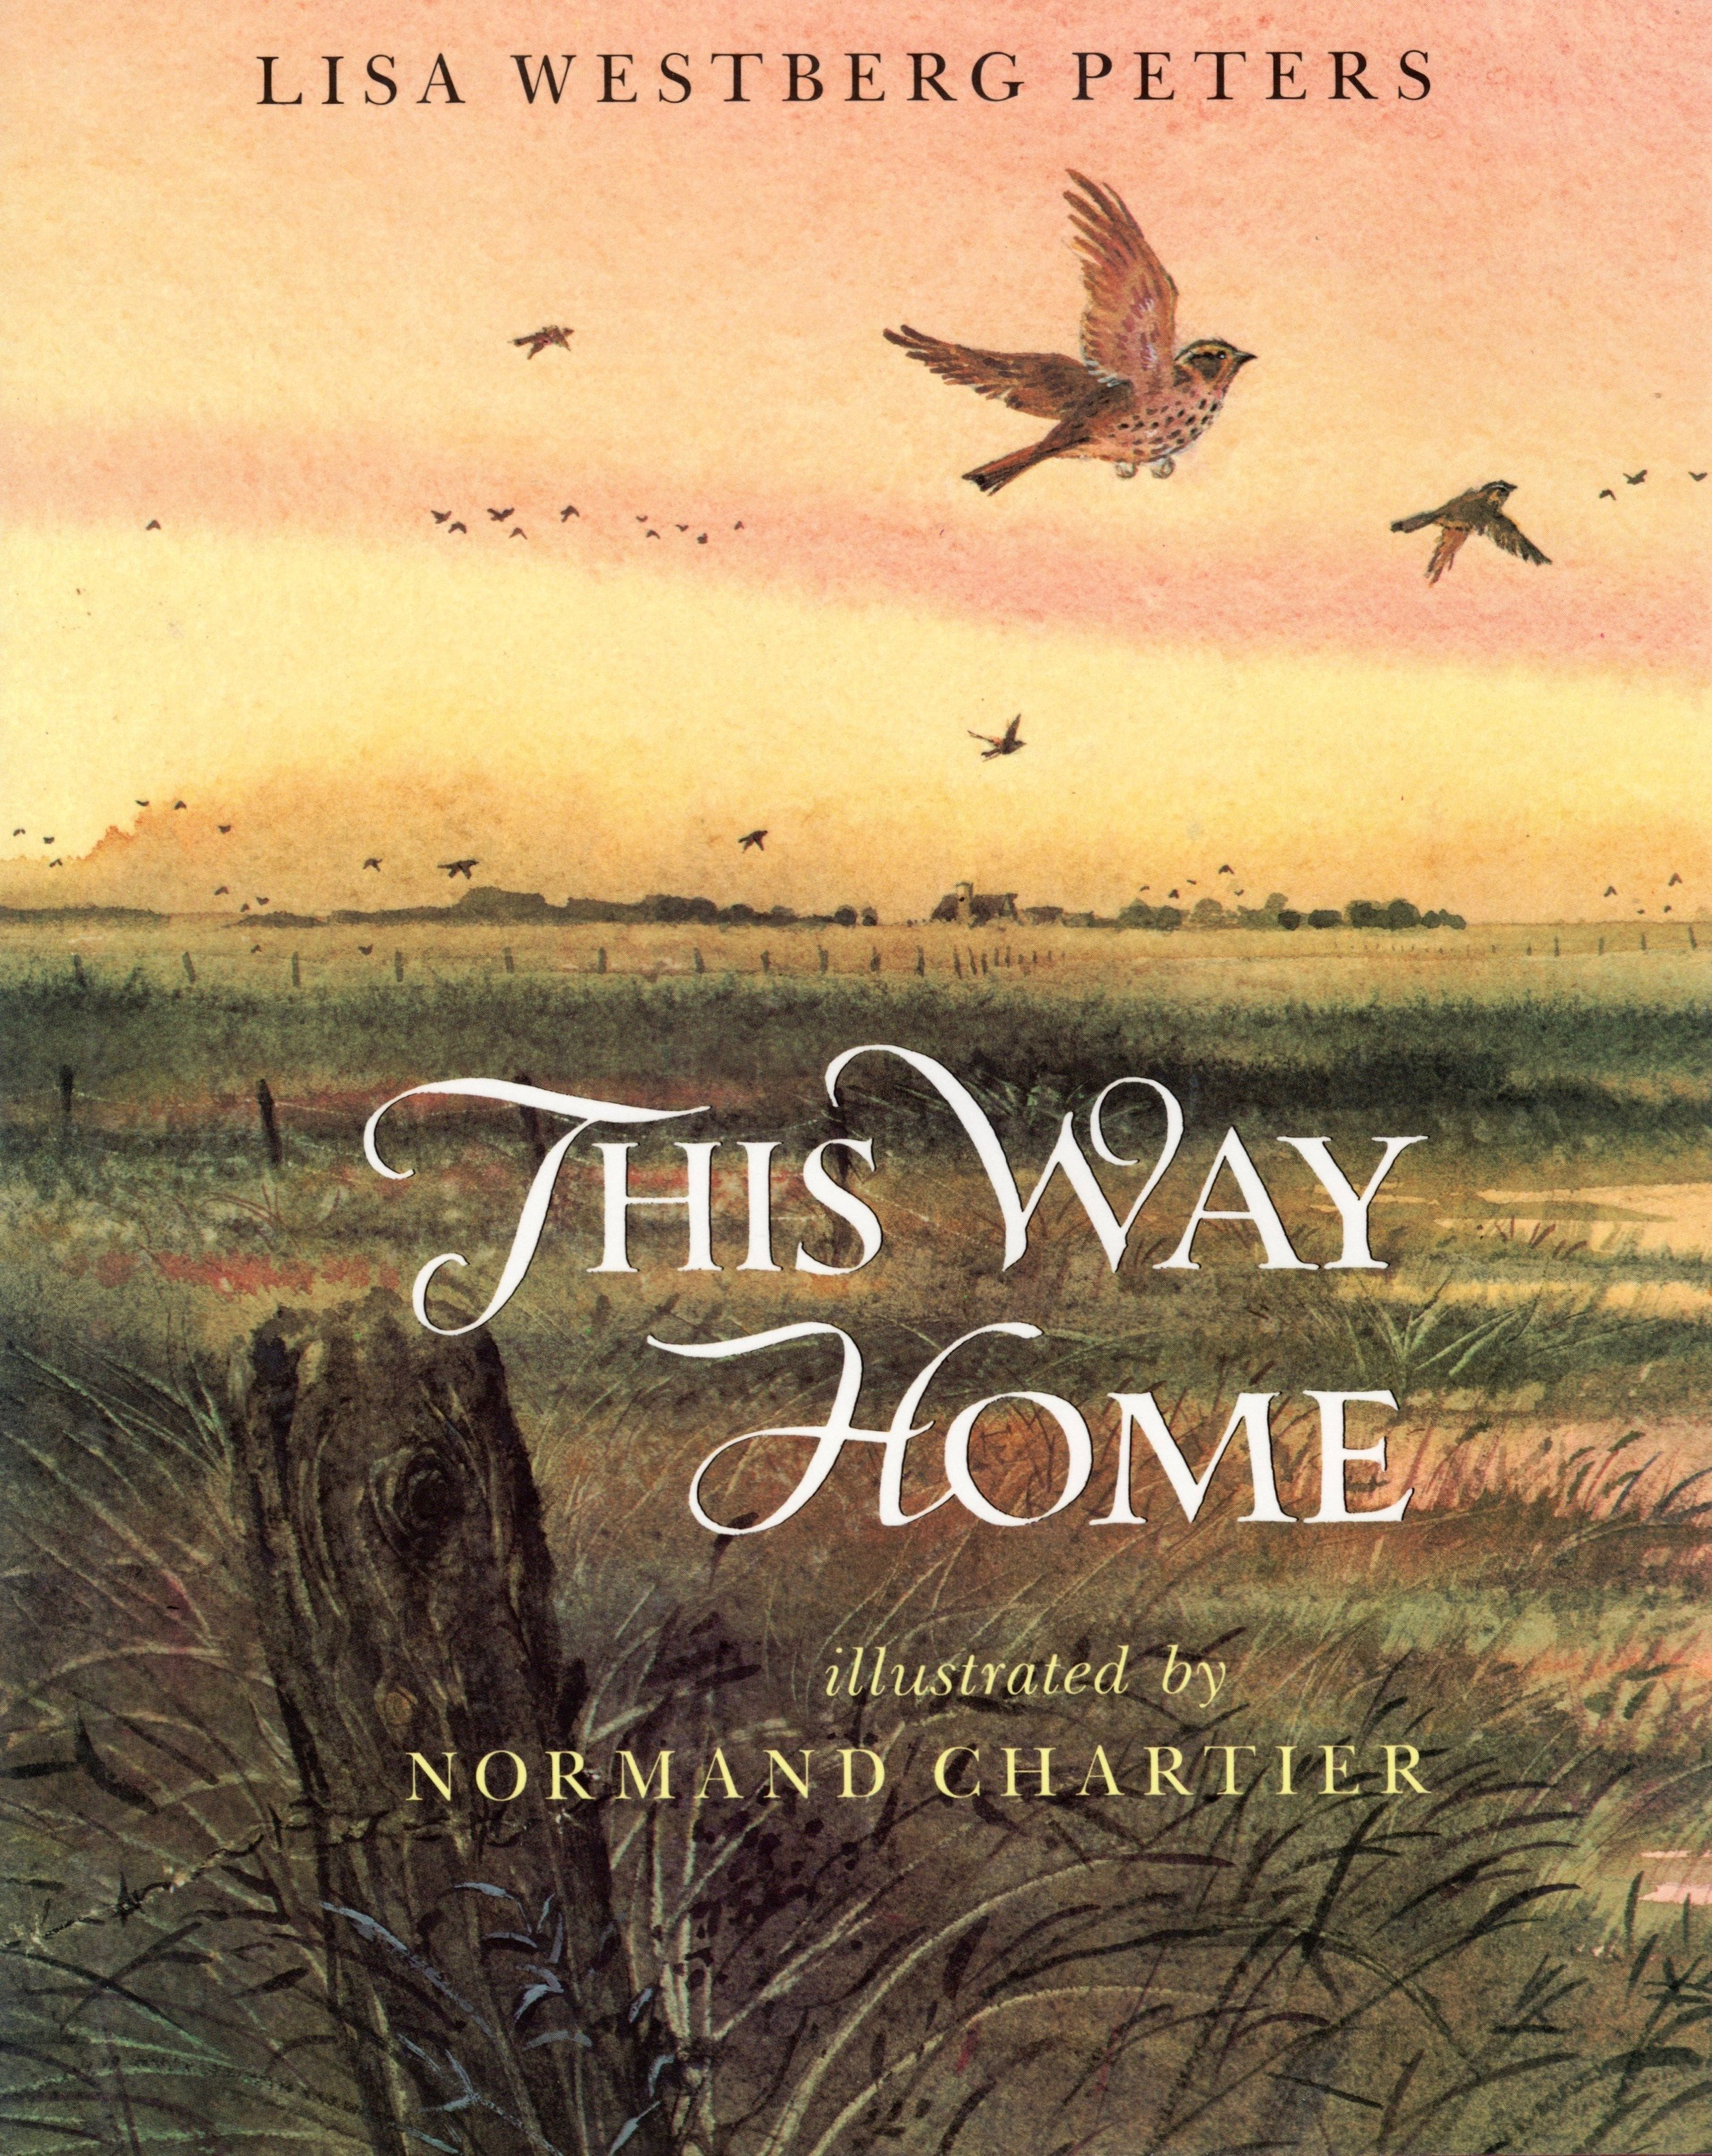 this way home cover.jpg